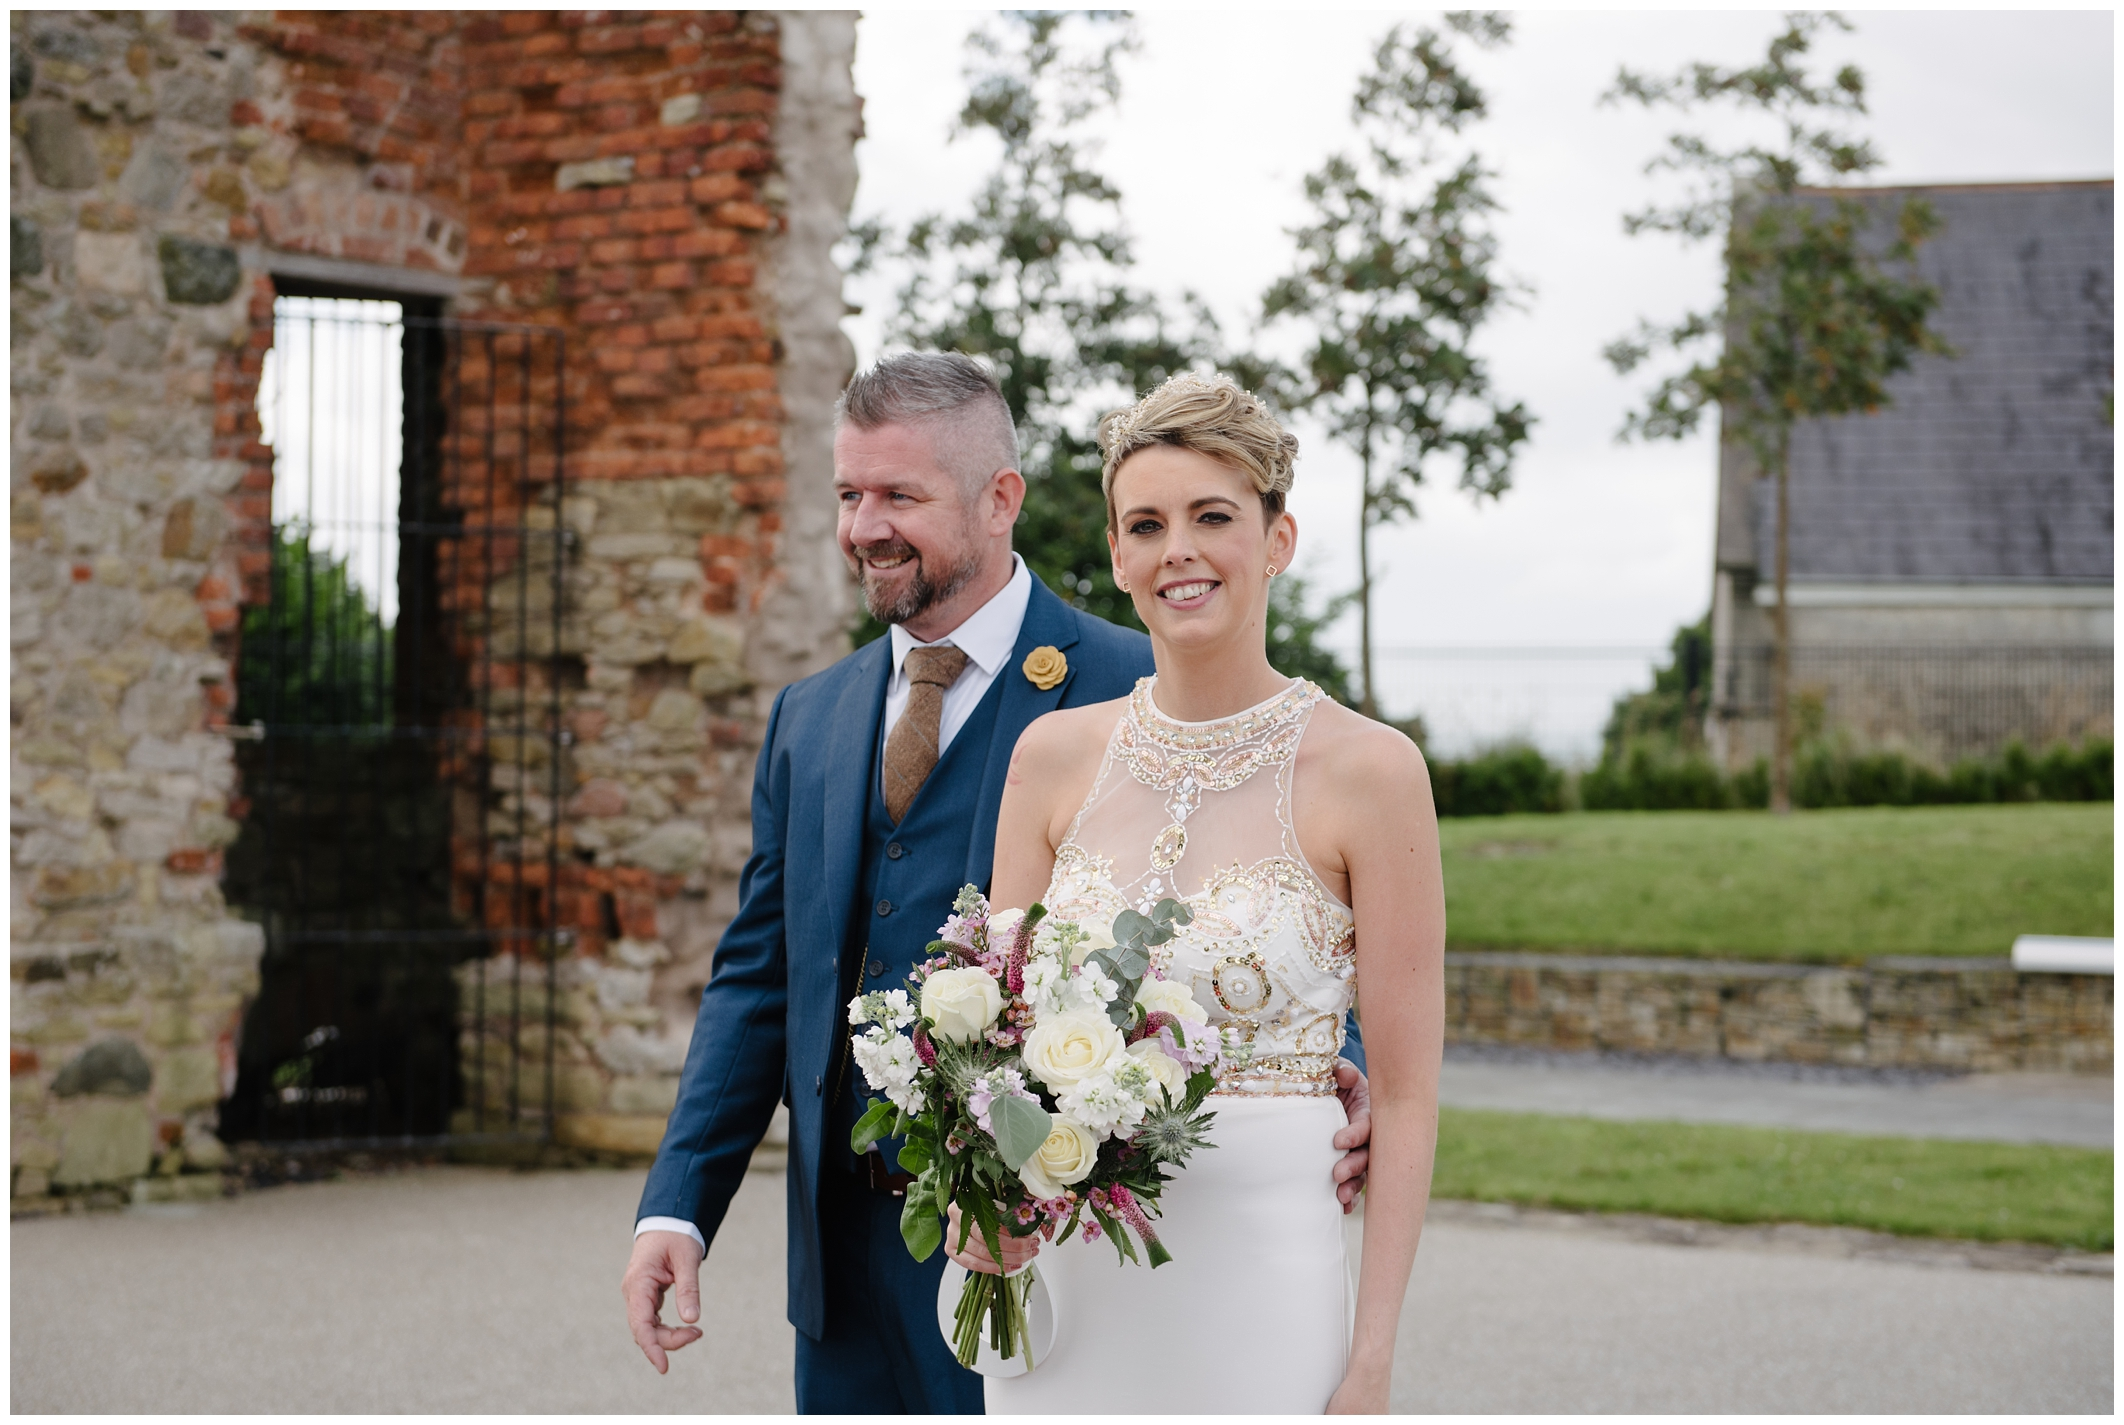 christina_stephen_hill_of_the_oneill_dungannon_wedding_jude_browne_photography_0031.jpg